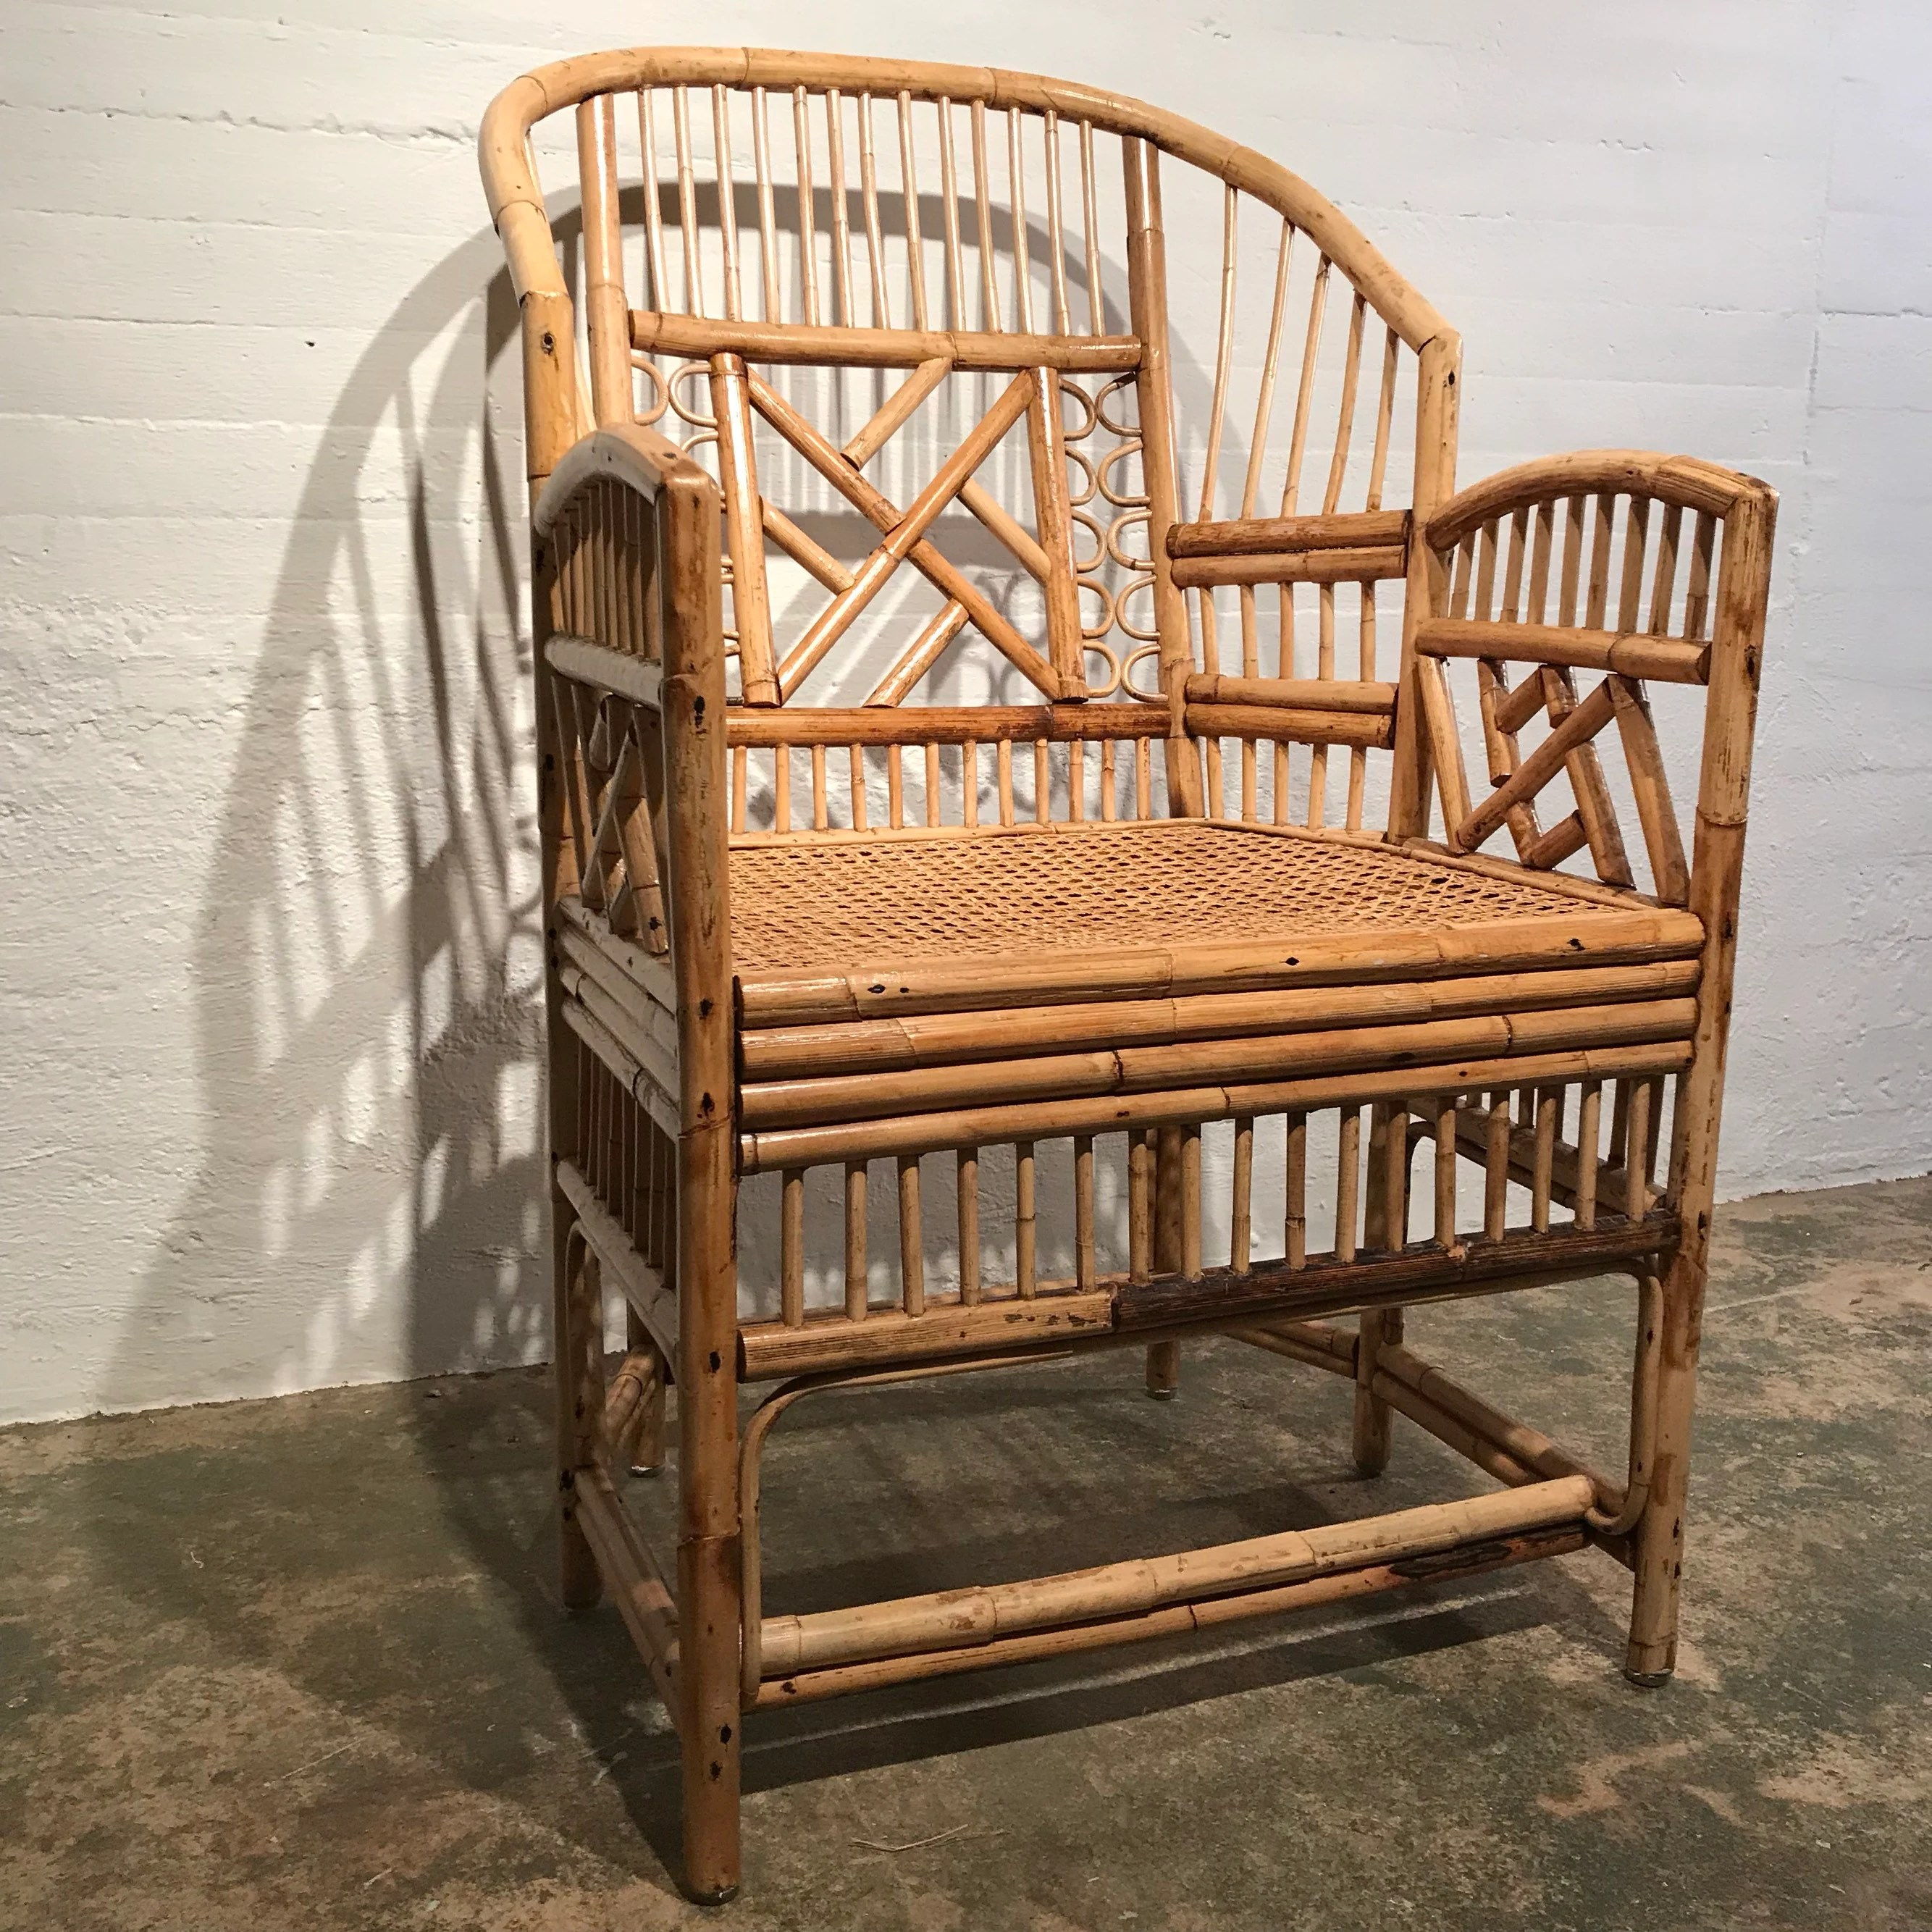 bamboo chairs for sale old wooden chair etsy vintage